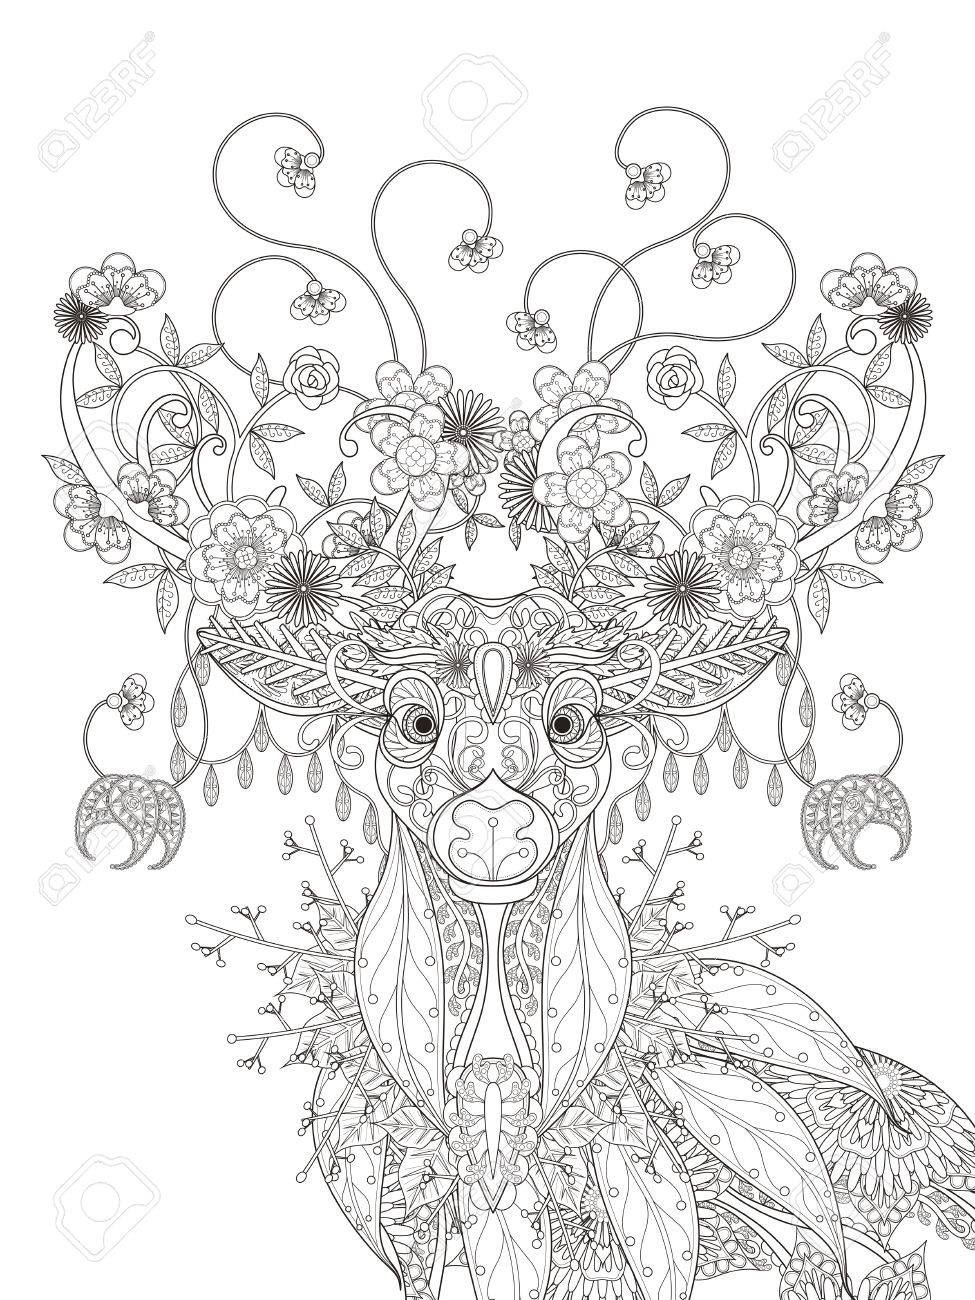 Adult Coloring Page - Abstract Attractive Floral Deer Royalty Free ...